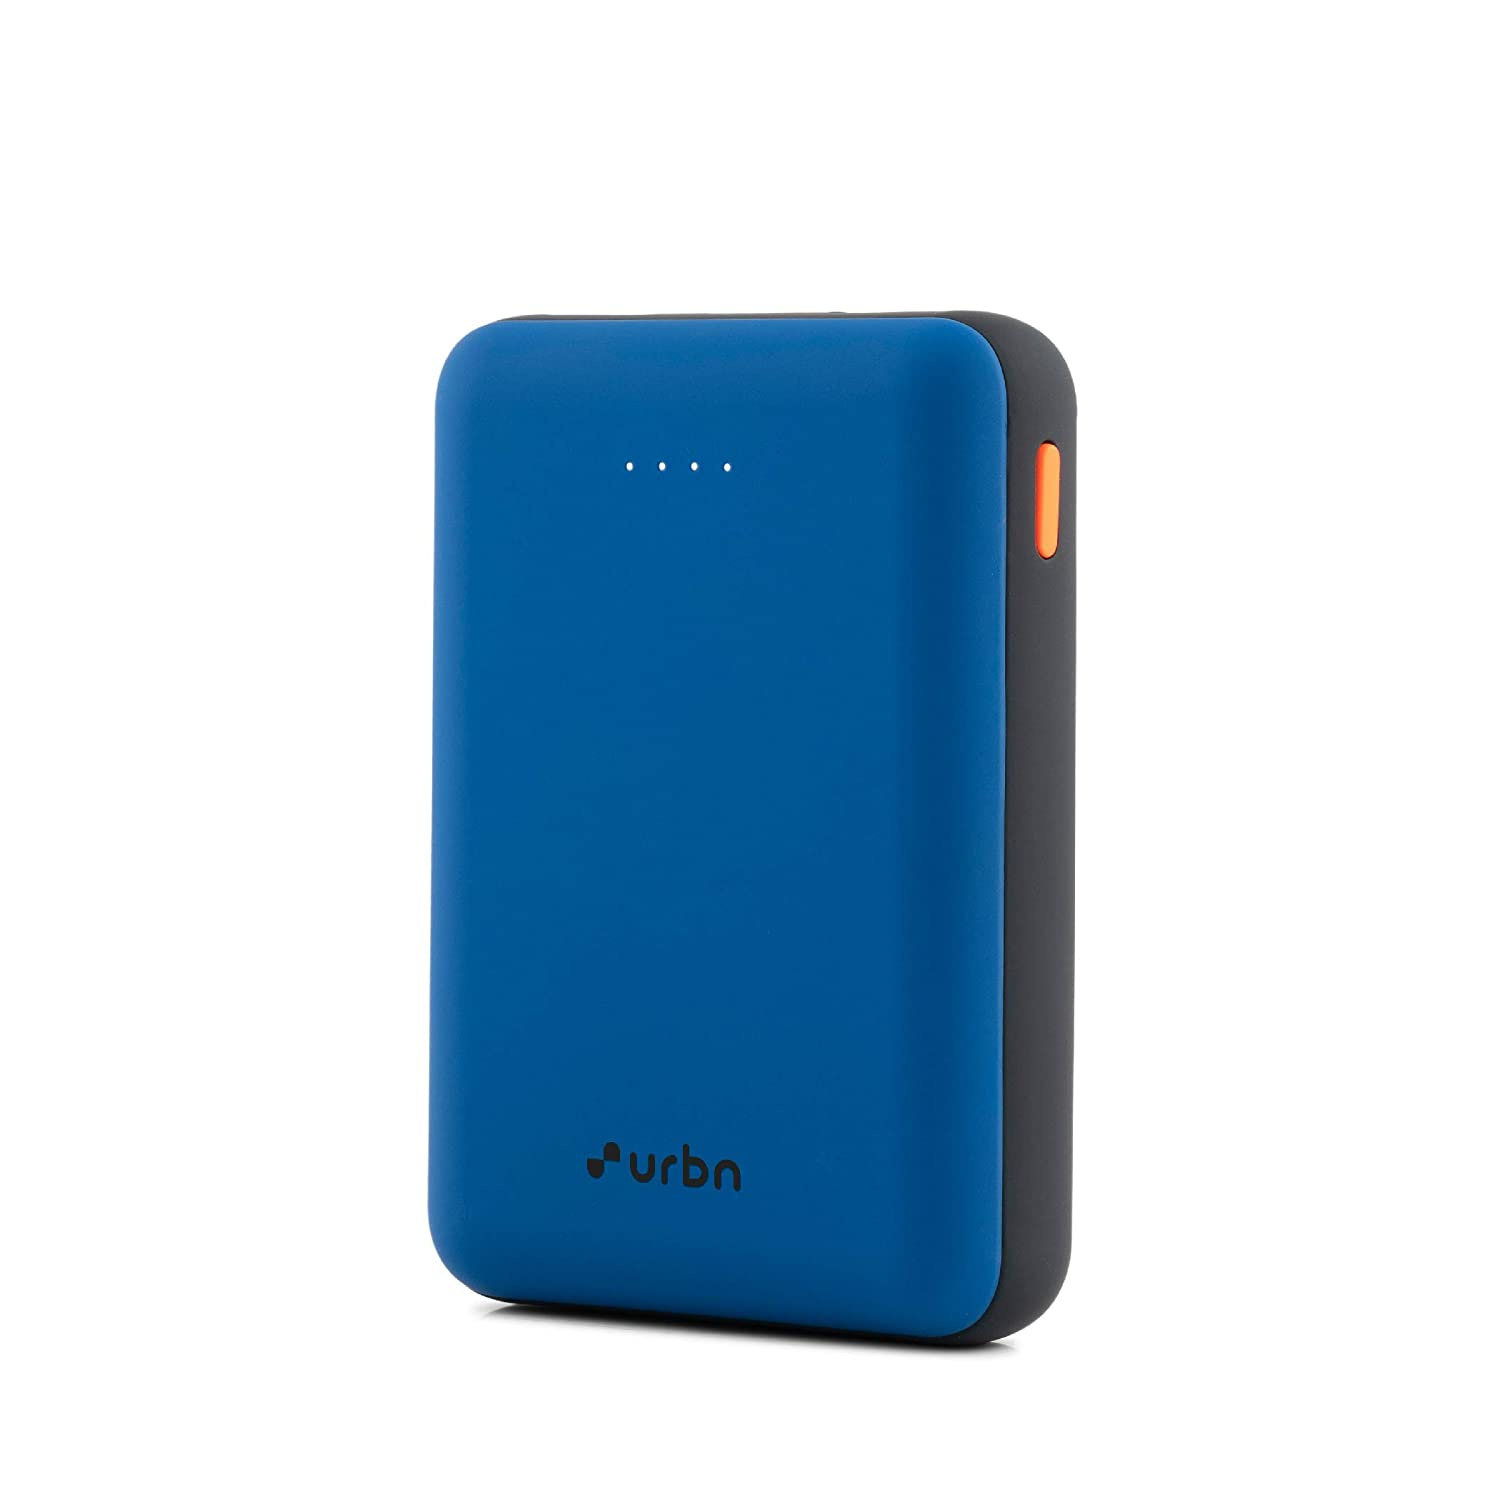 URBN 10000 mAh Li-Polymer Ultra Compact Power Bank with 12W Fast Charge